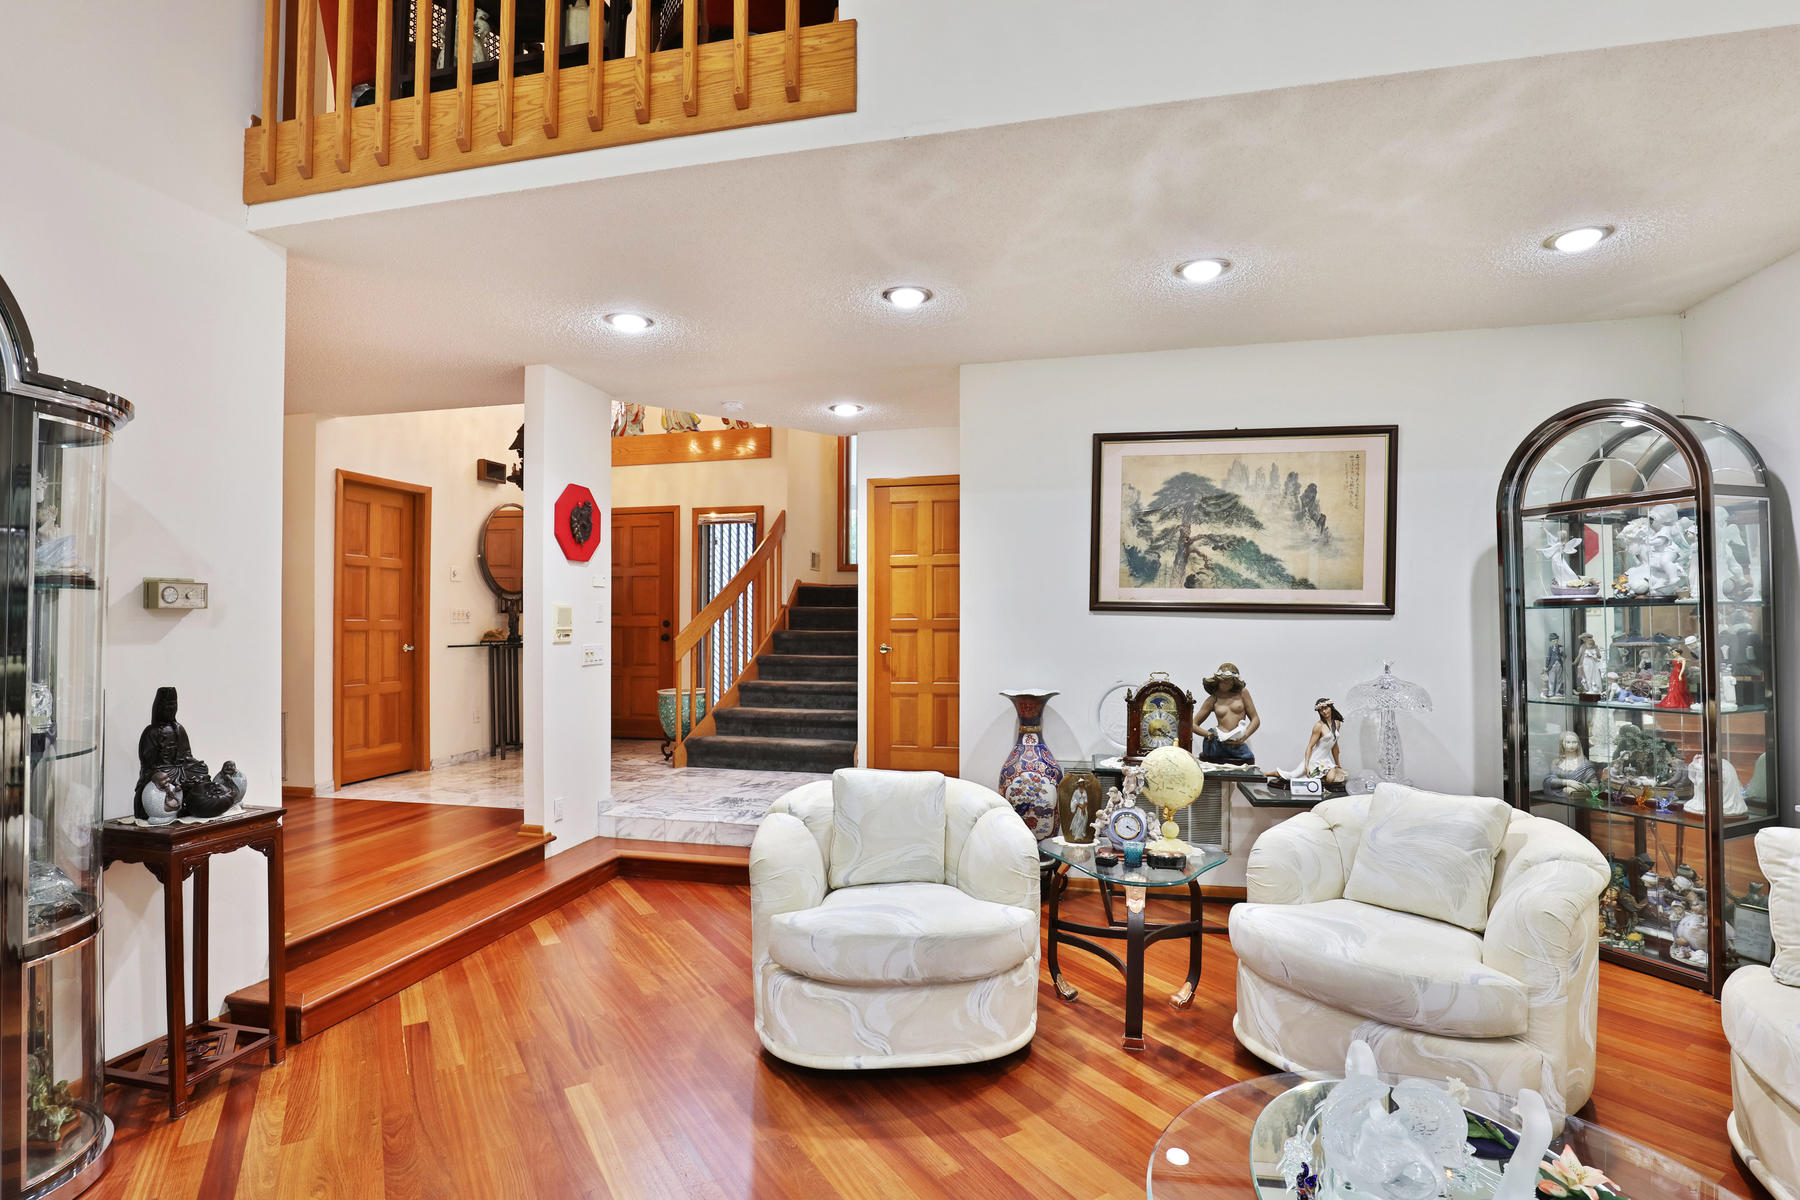 Maison unifamiliale pour l Vente à Unique Offering in Wall! 2133 Old Mill Road Wall, New Jersey 07719 États-Unis